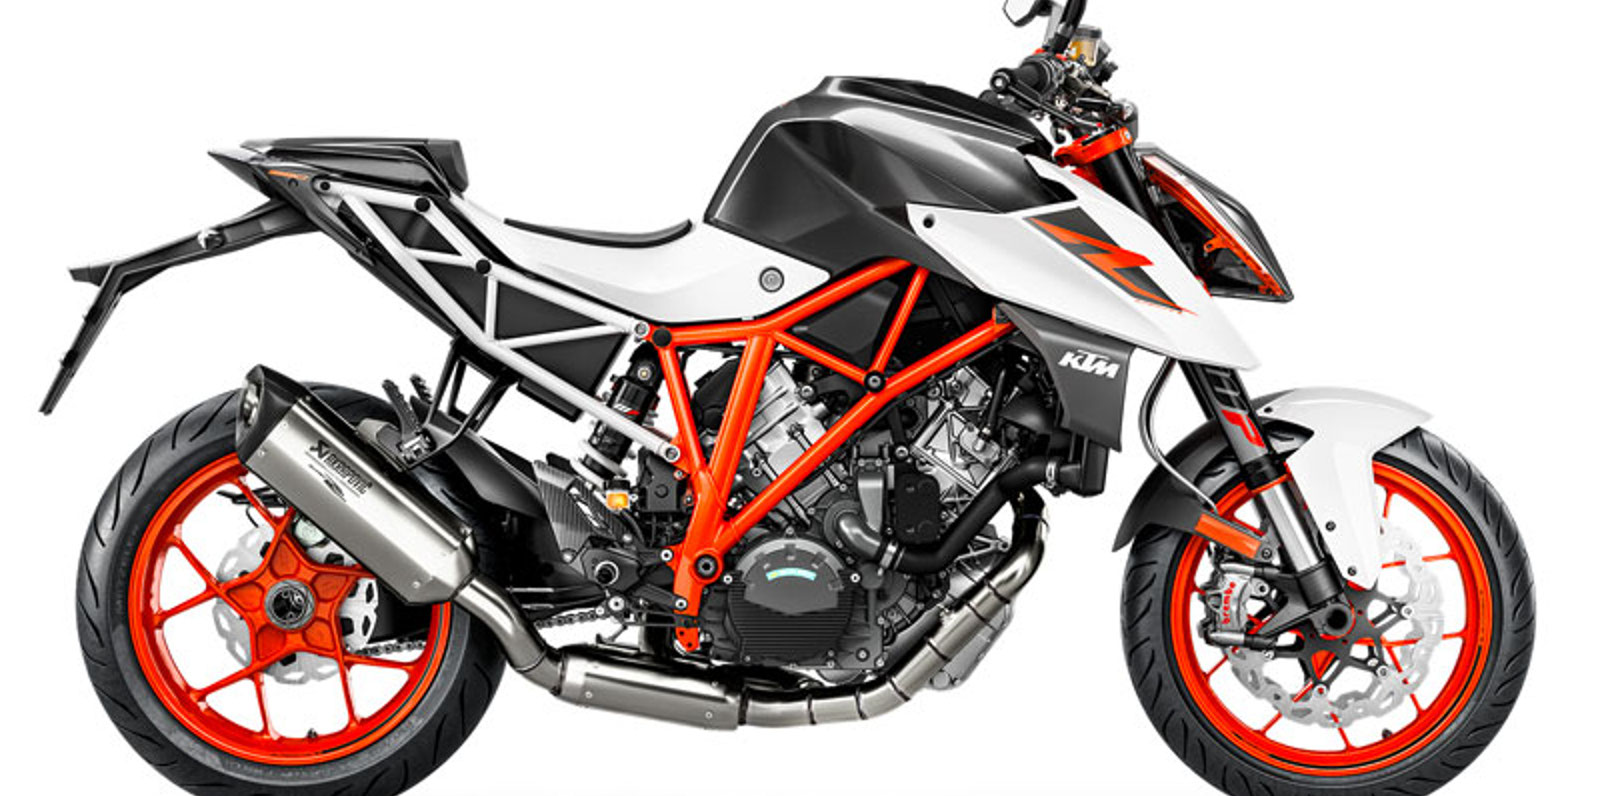 ktm super duke la bestia 2 0 vademotor. Black Bedroom Furniture Sets. Home Design Ideas